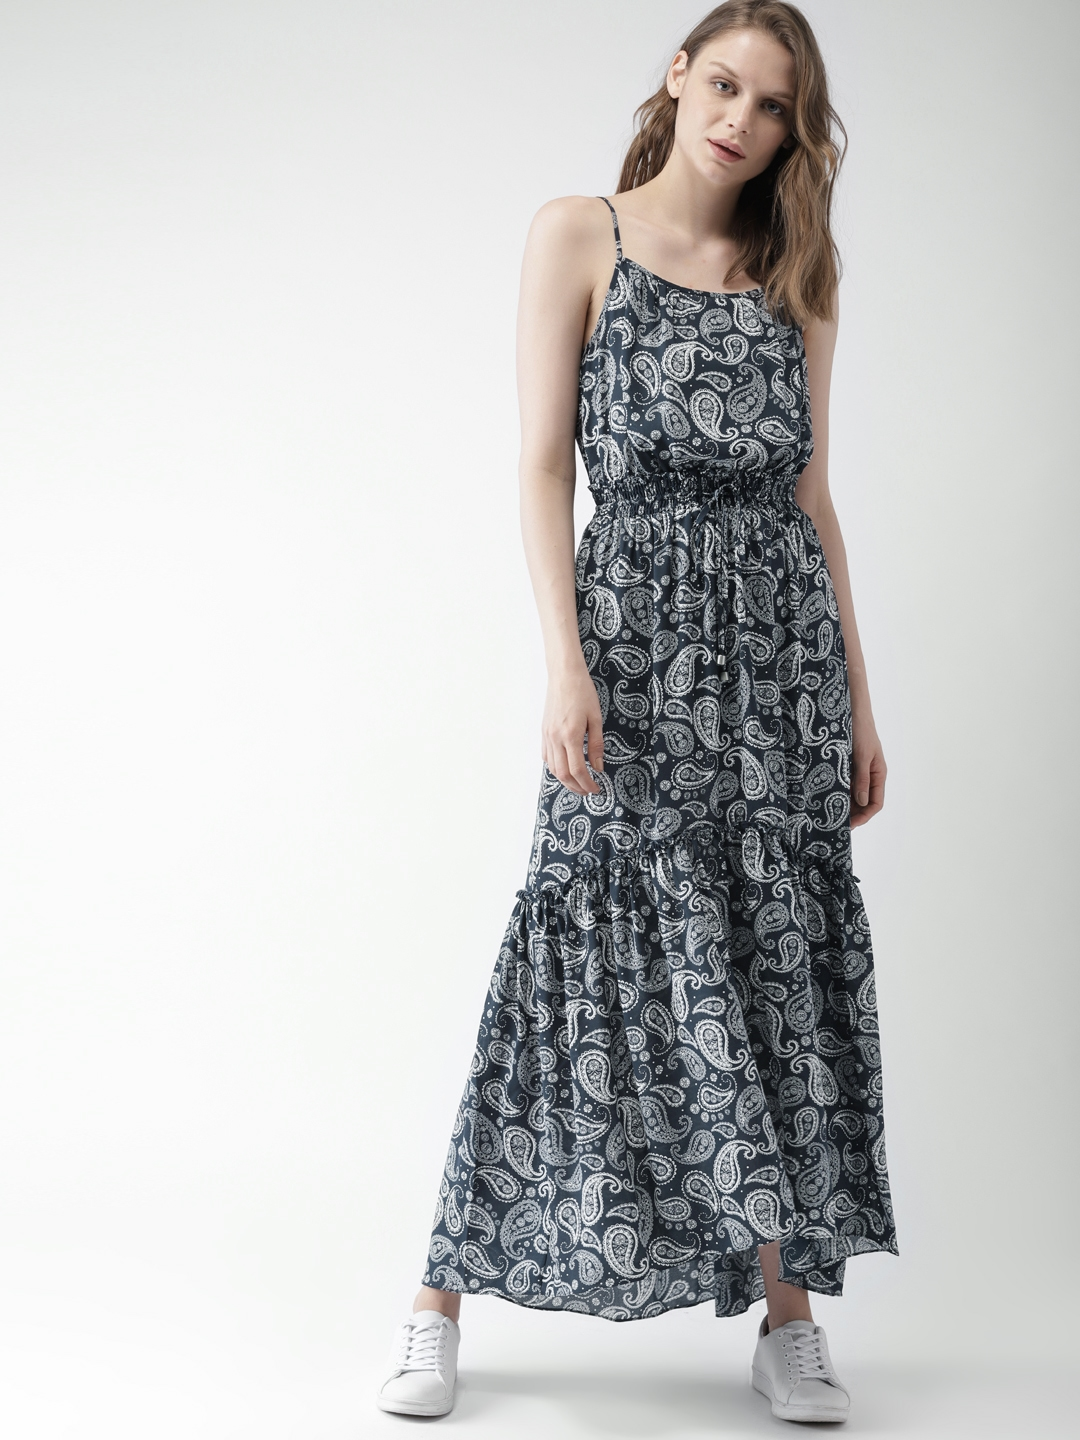 66d6c2f7807 Buy Tommy Hilfiger Women Navy Printed Maxi Dress - Dresses for Women ...